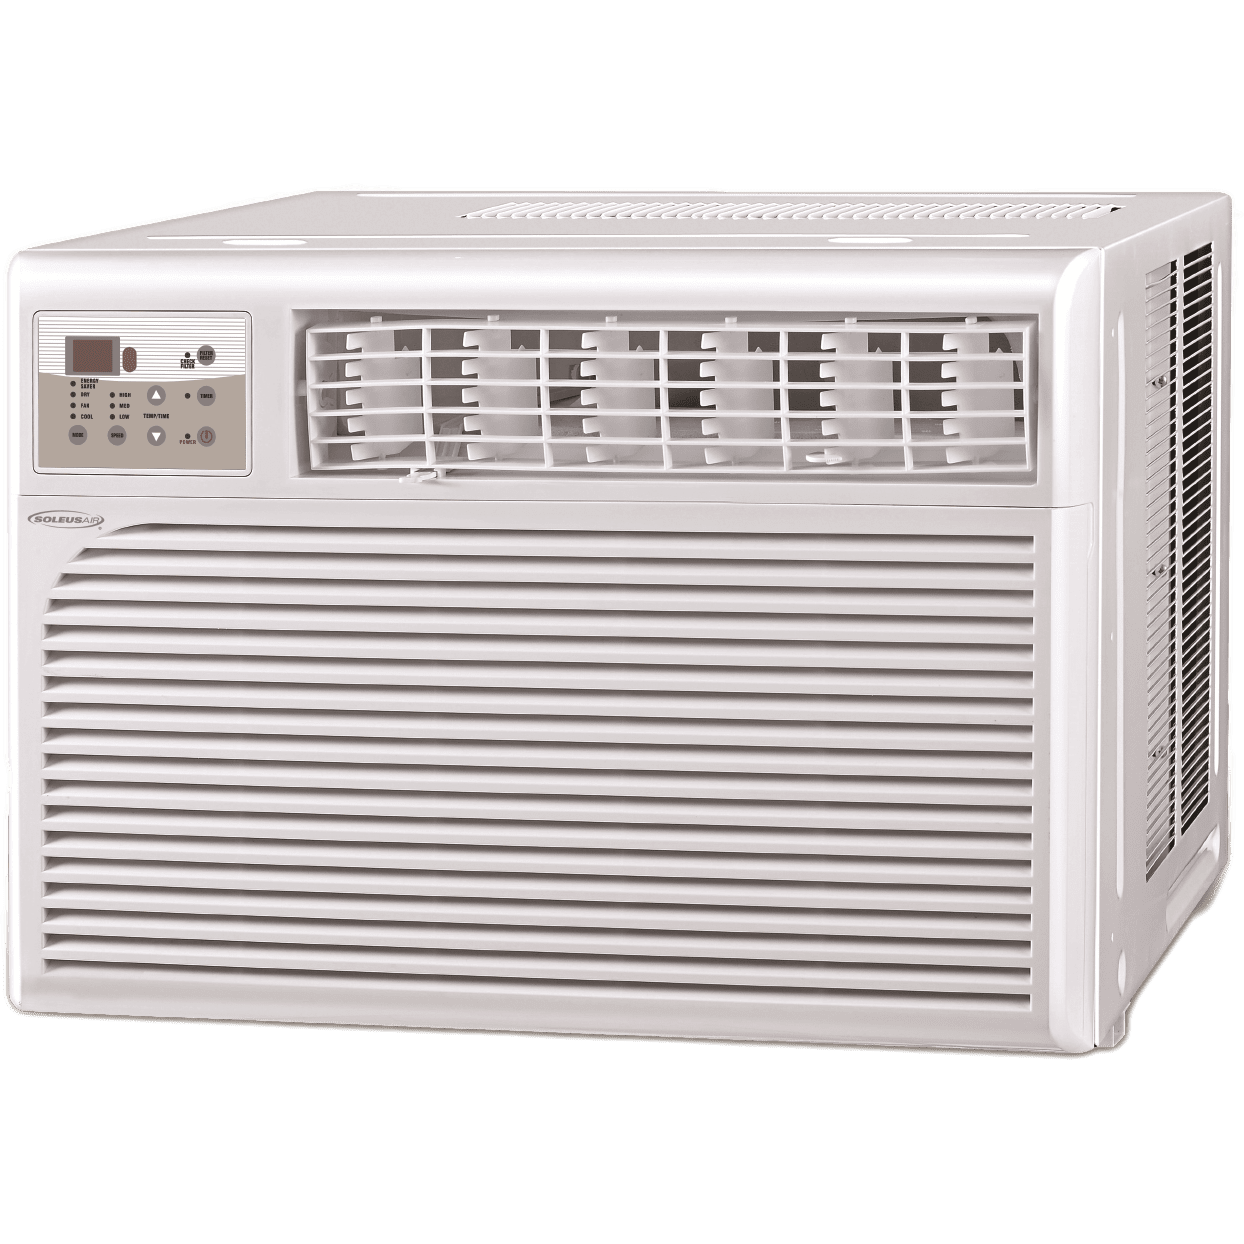 Solues Air HCC-W15ES-A1 15,000 BTU Window Air Conditioner so3788